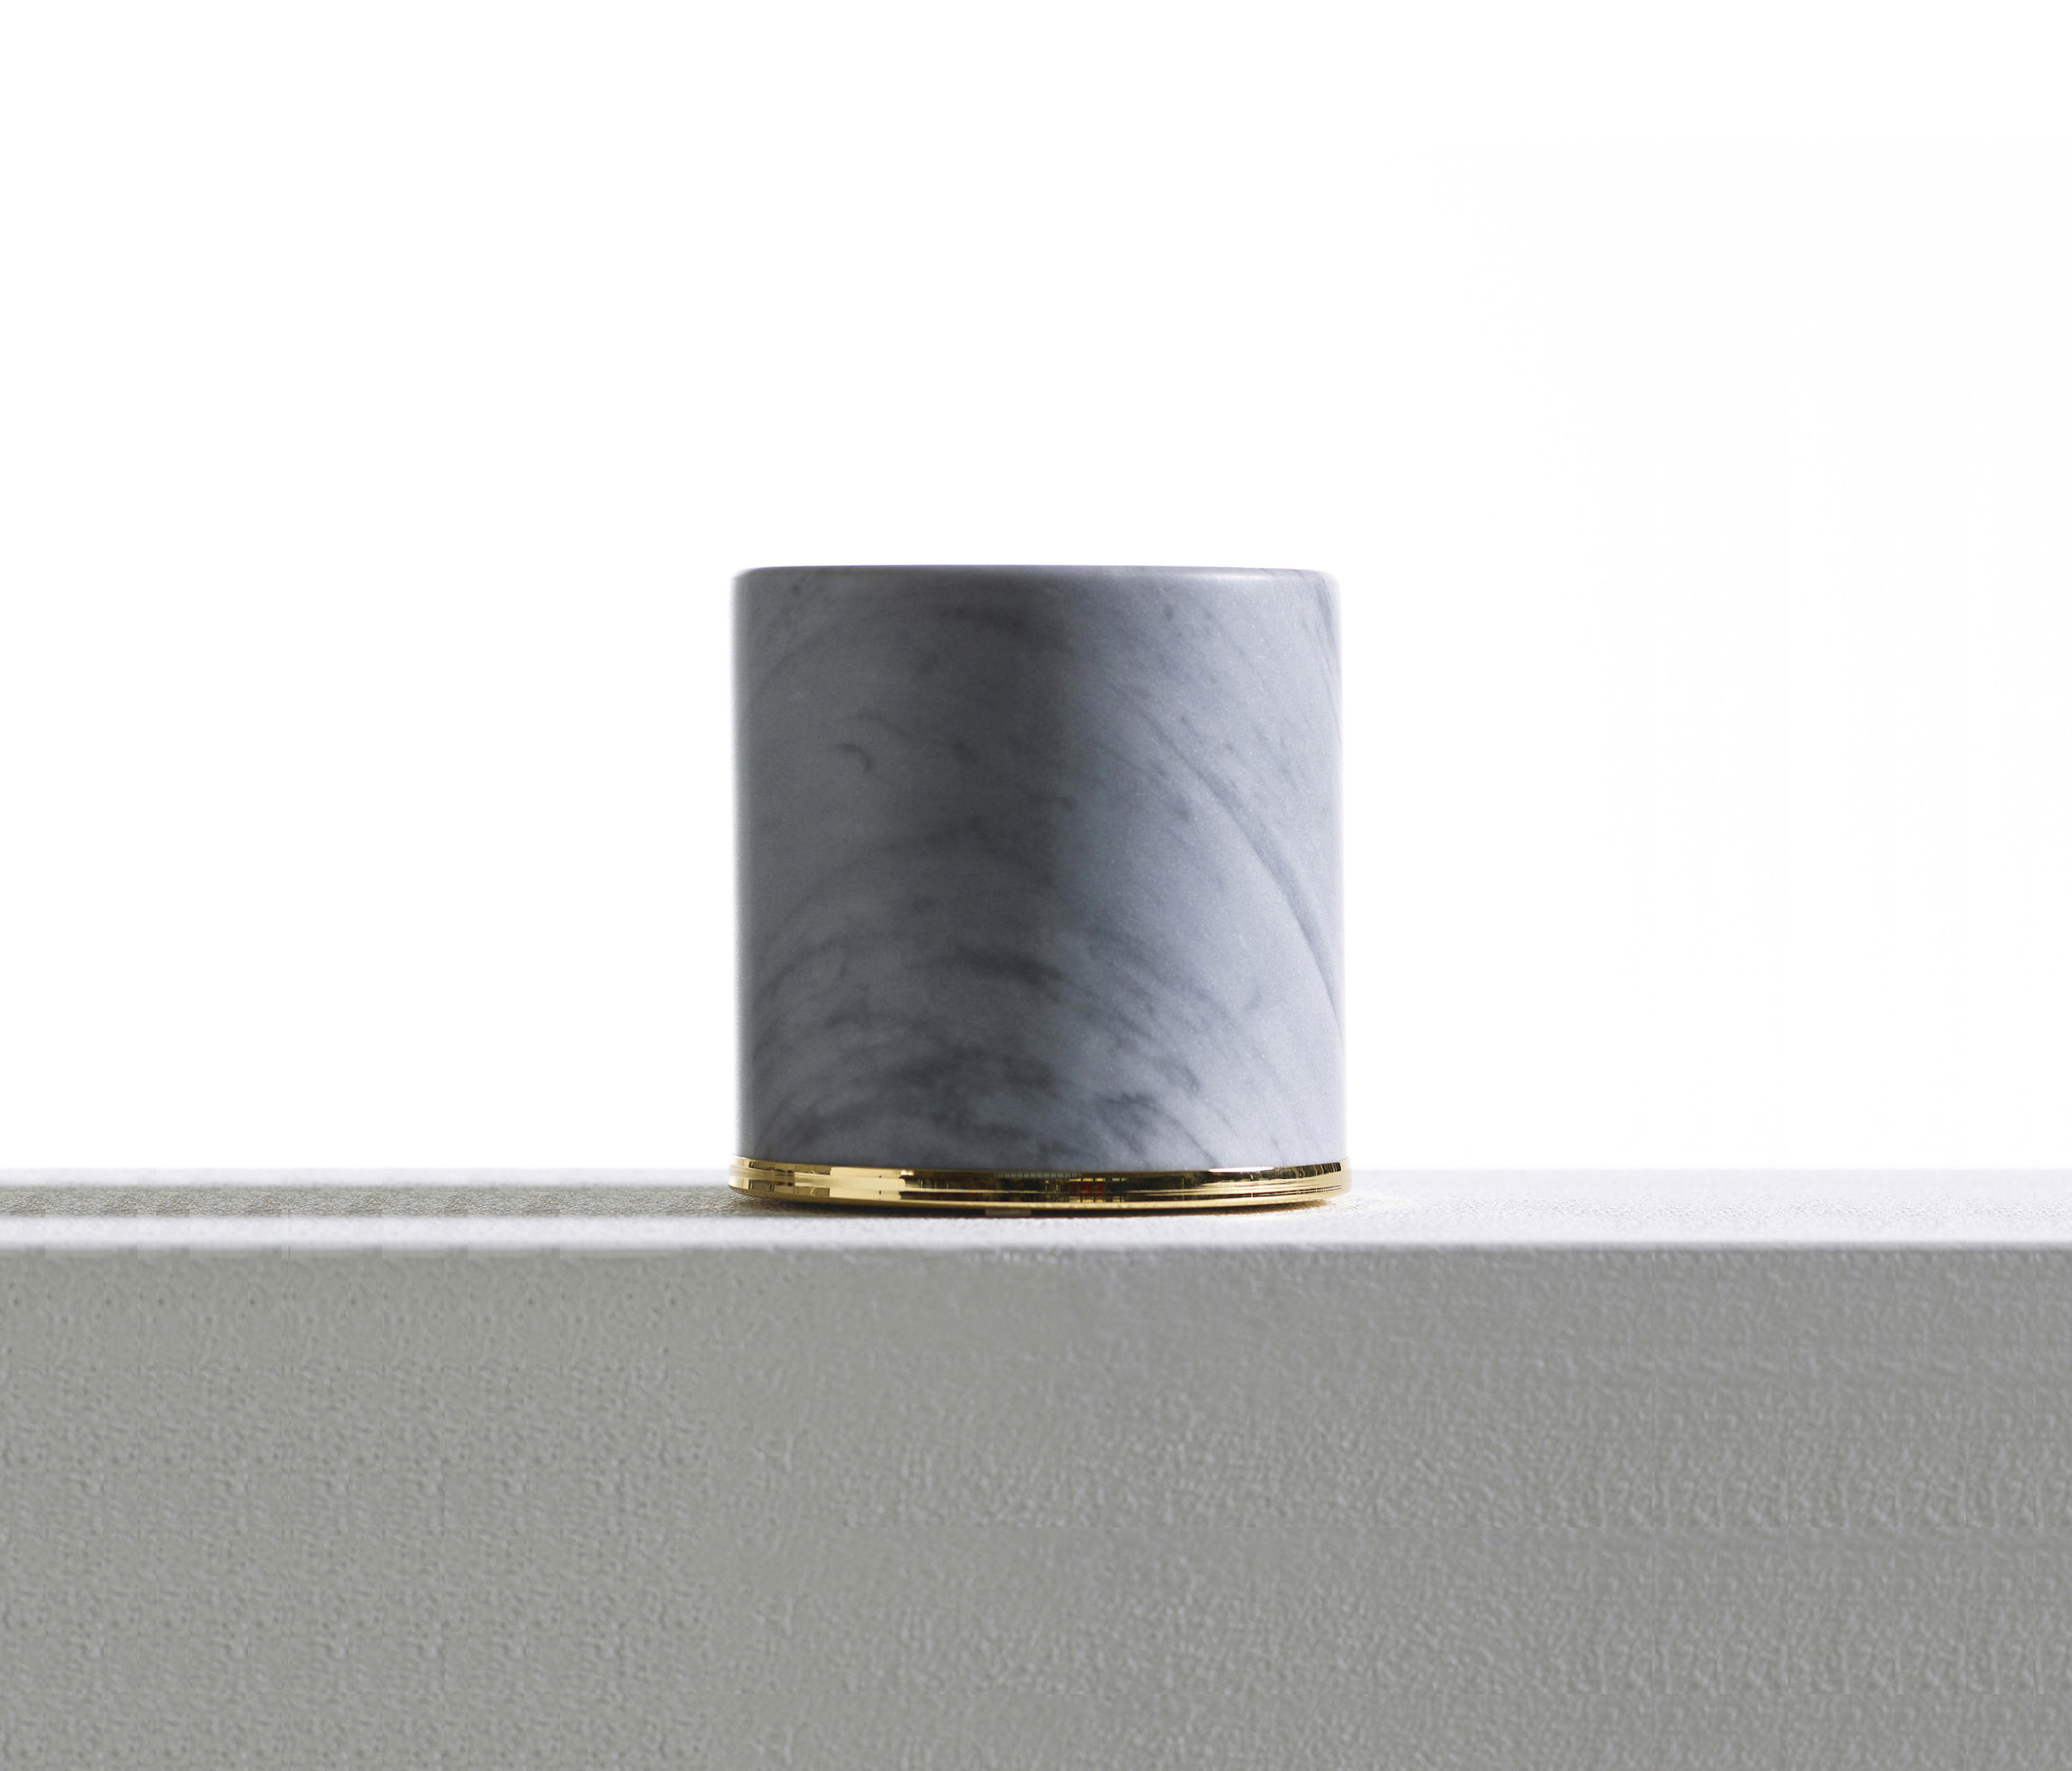 Fermaporte door stopper by Opinion Ciatti | Door stops  sc 1 st  Architonic & FERMAPORTE DOOR STOPPER - Door stops from Opinion Ciatti | Architonic